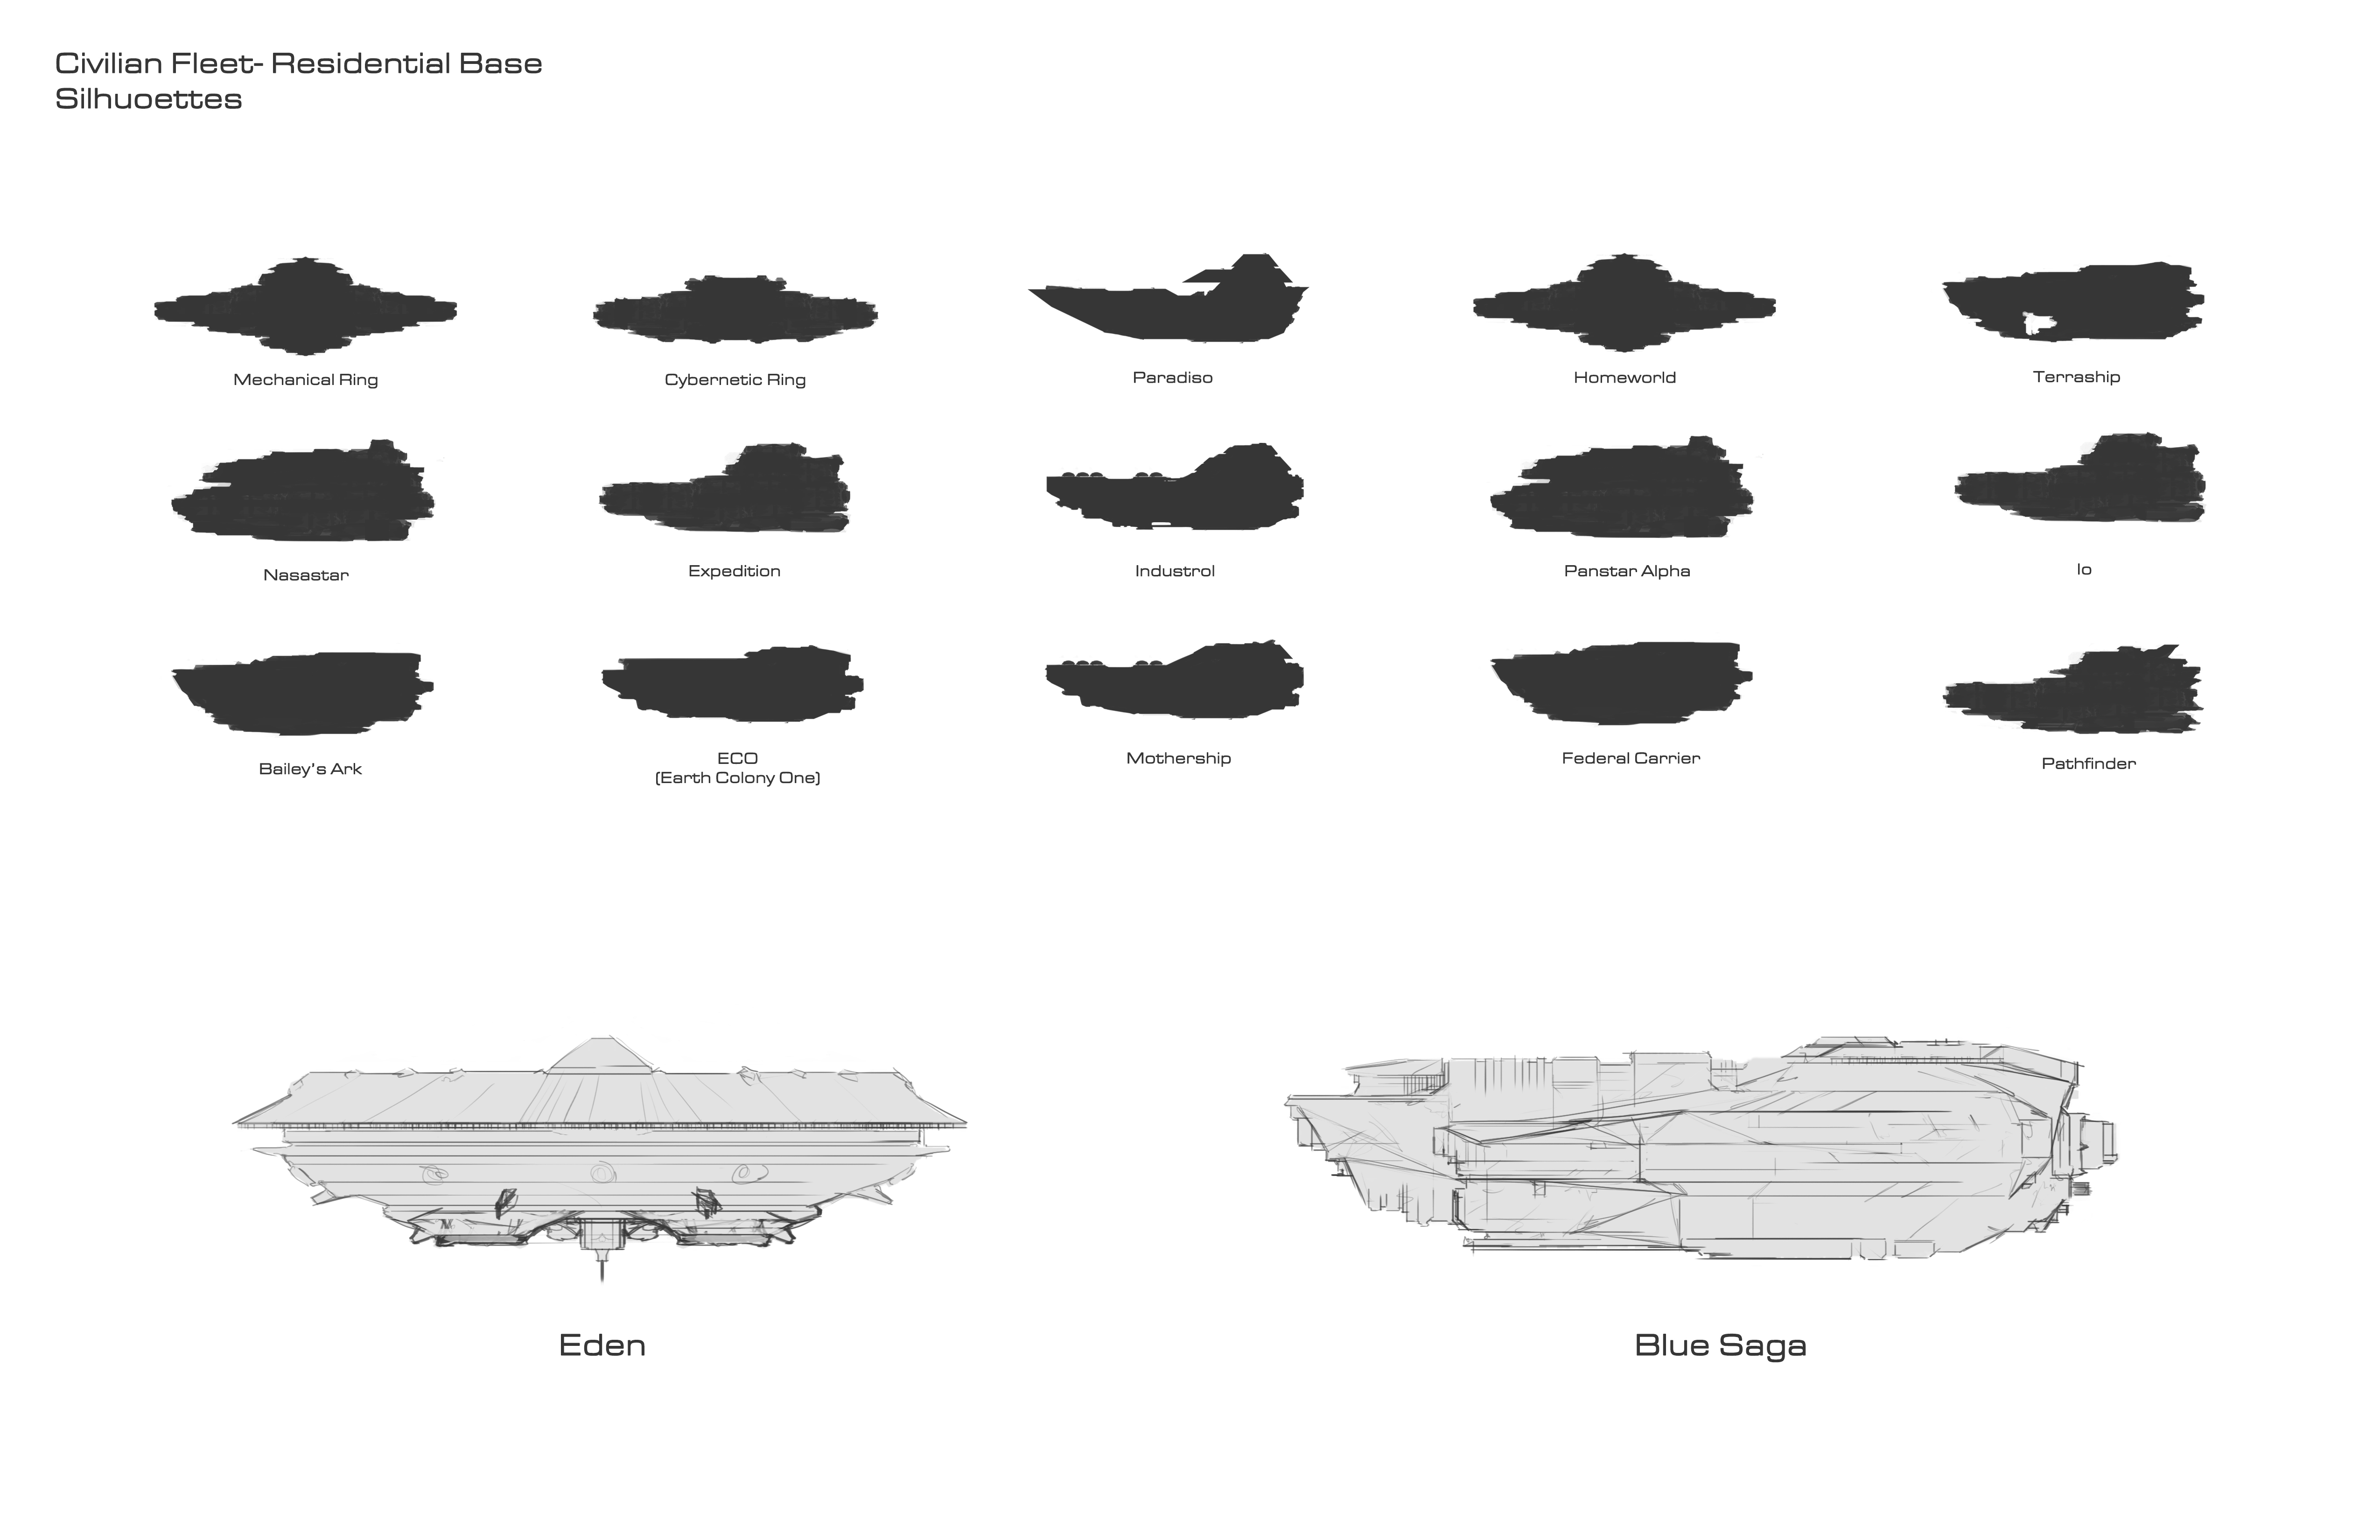 Concept Vehicle CivilianFleet